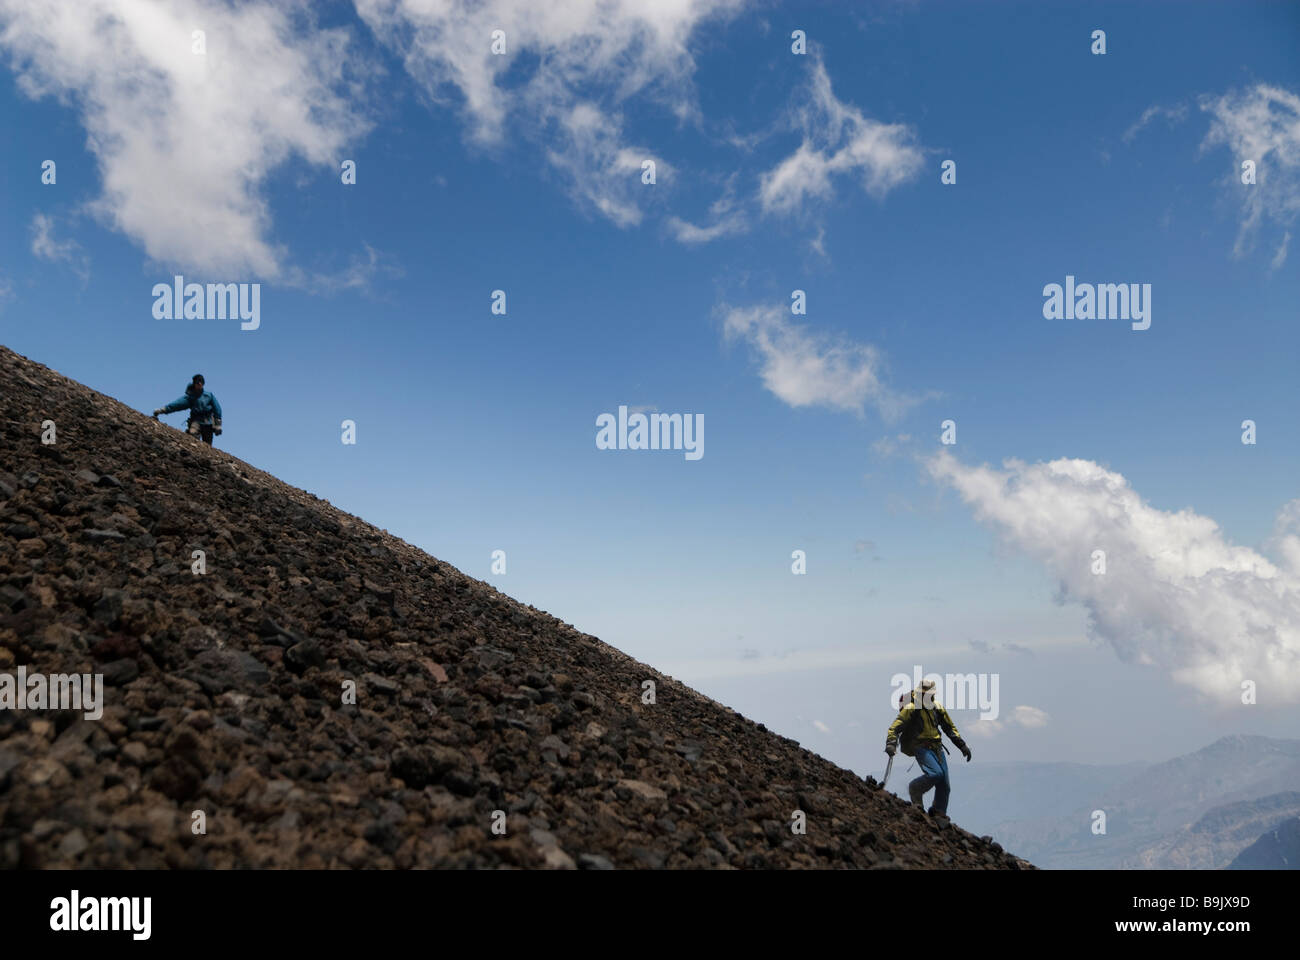 Two climbers descend a steep scree slope with a blue sky in the background. - Stock Image